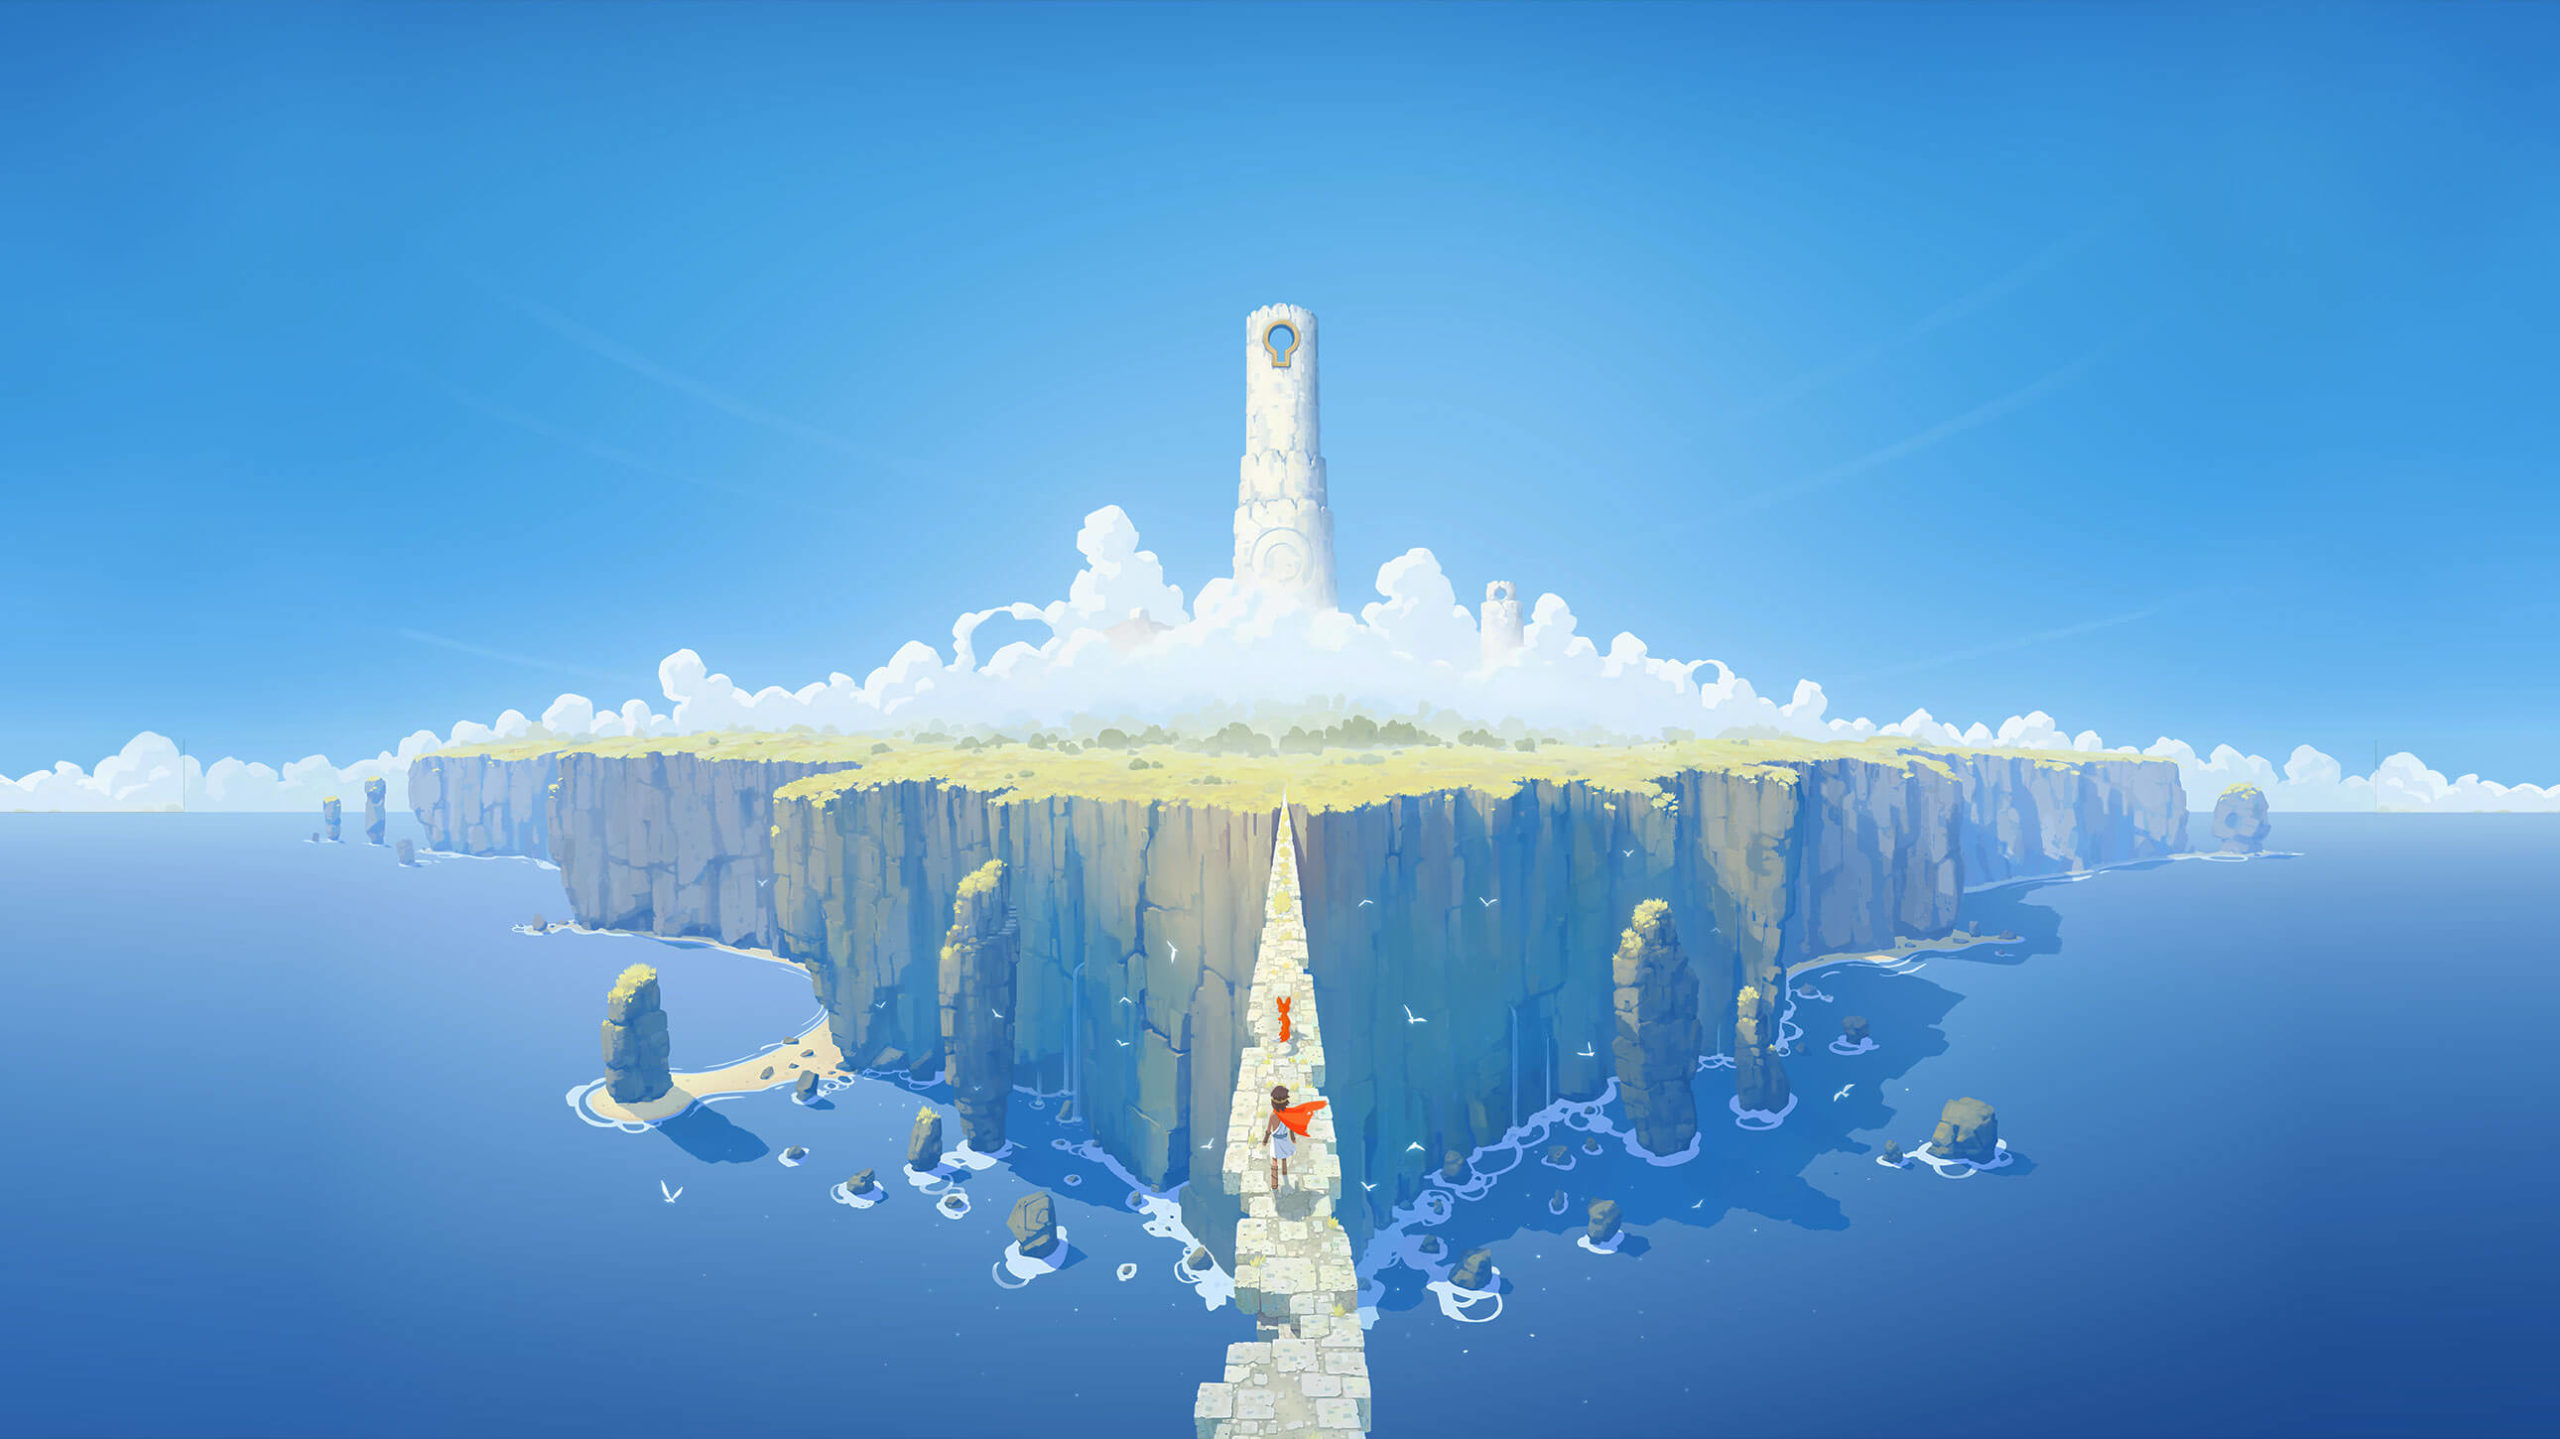 Rime Video Game Screenshot|Ori and the Blind Forest - Calming and Relaxing Games|Calming Games - Sims 4 Screenshot|Calming and Relaxing Games - Stardew Valley